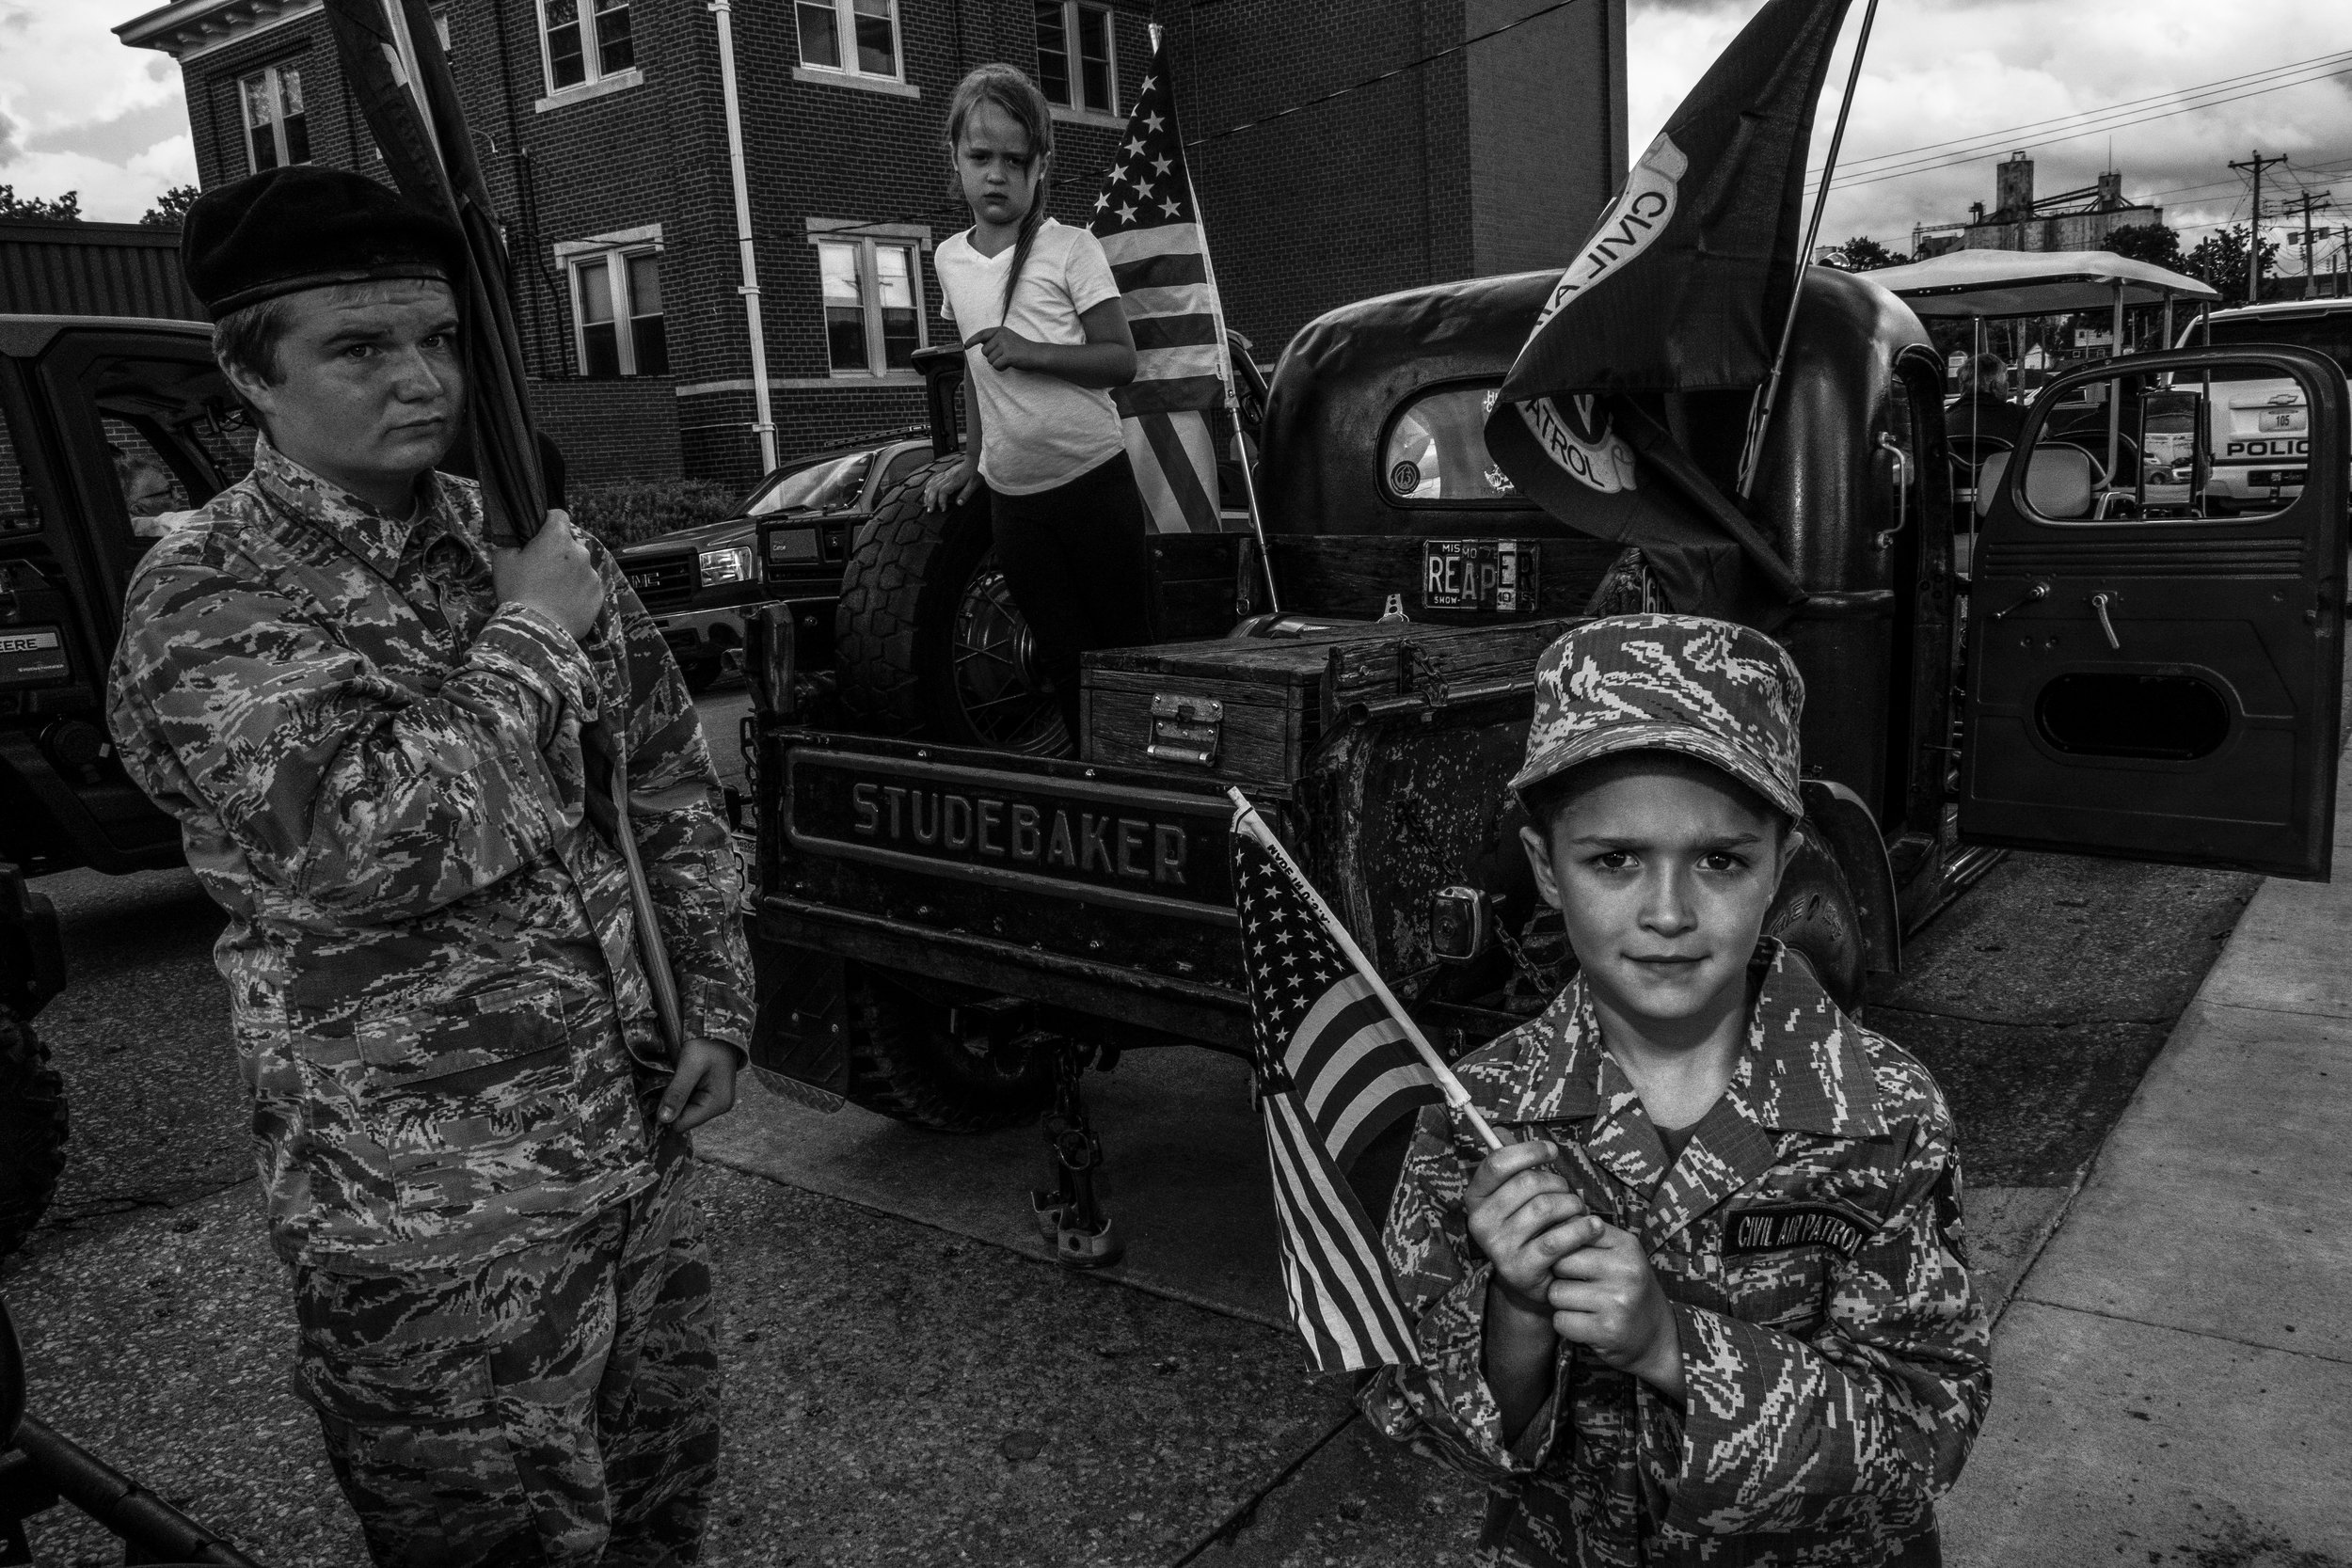 The Zumsteg kids pose for a portrait during the Real American Heroes parade in Mexico, Missouri on Wednesday, Jun. 2019.